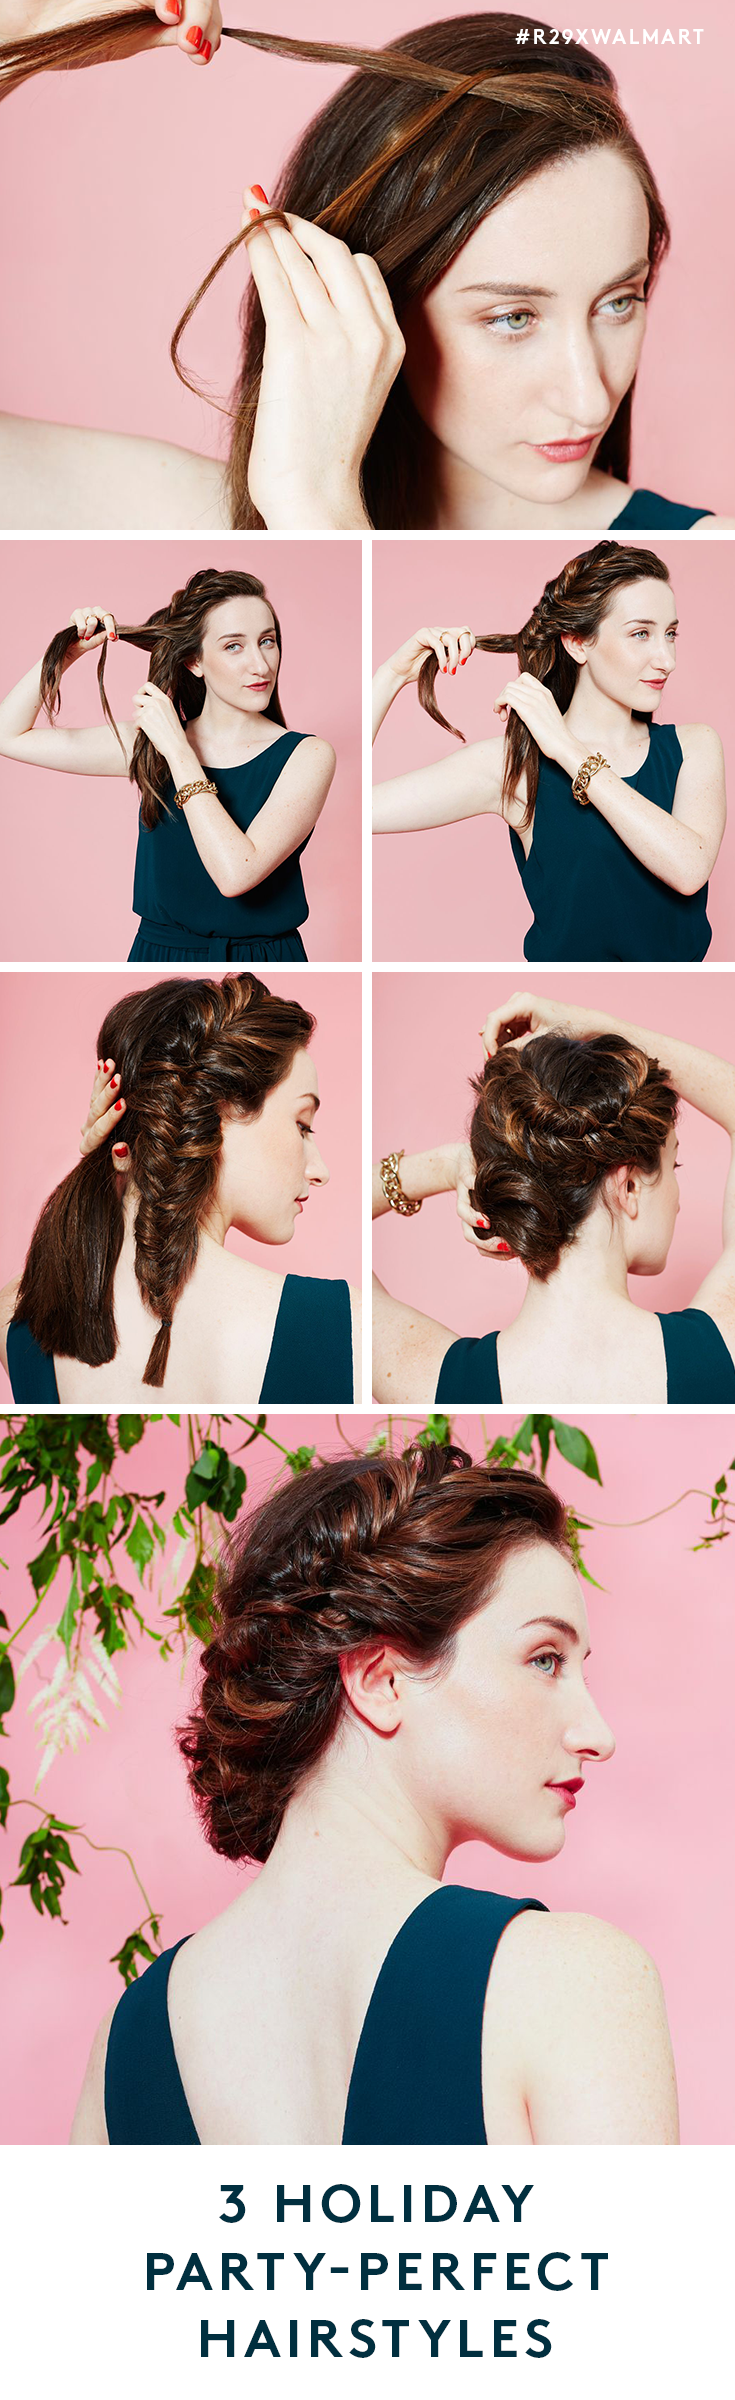 Wedding Guest Hairstyles - Cool Looks | Perfect hairstyle, Hair ...